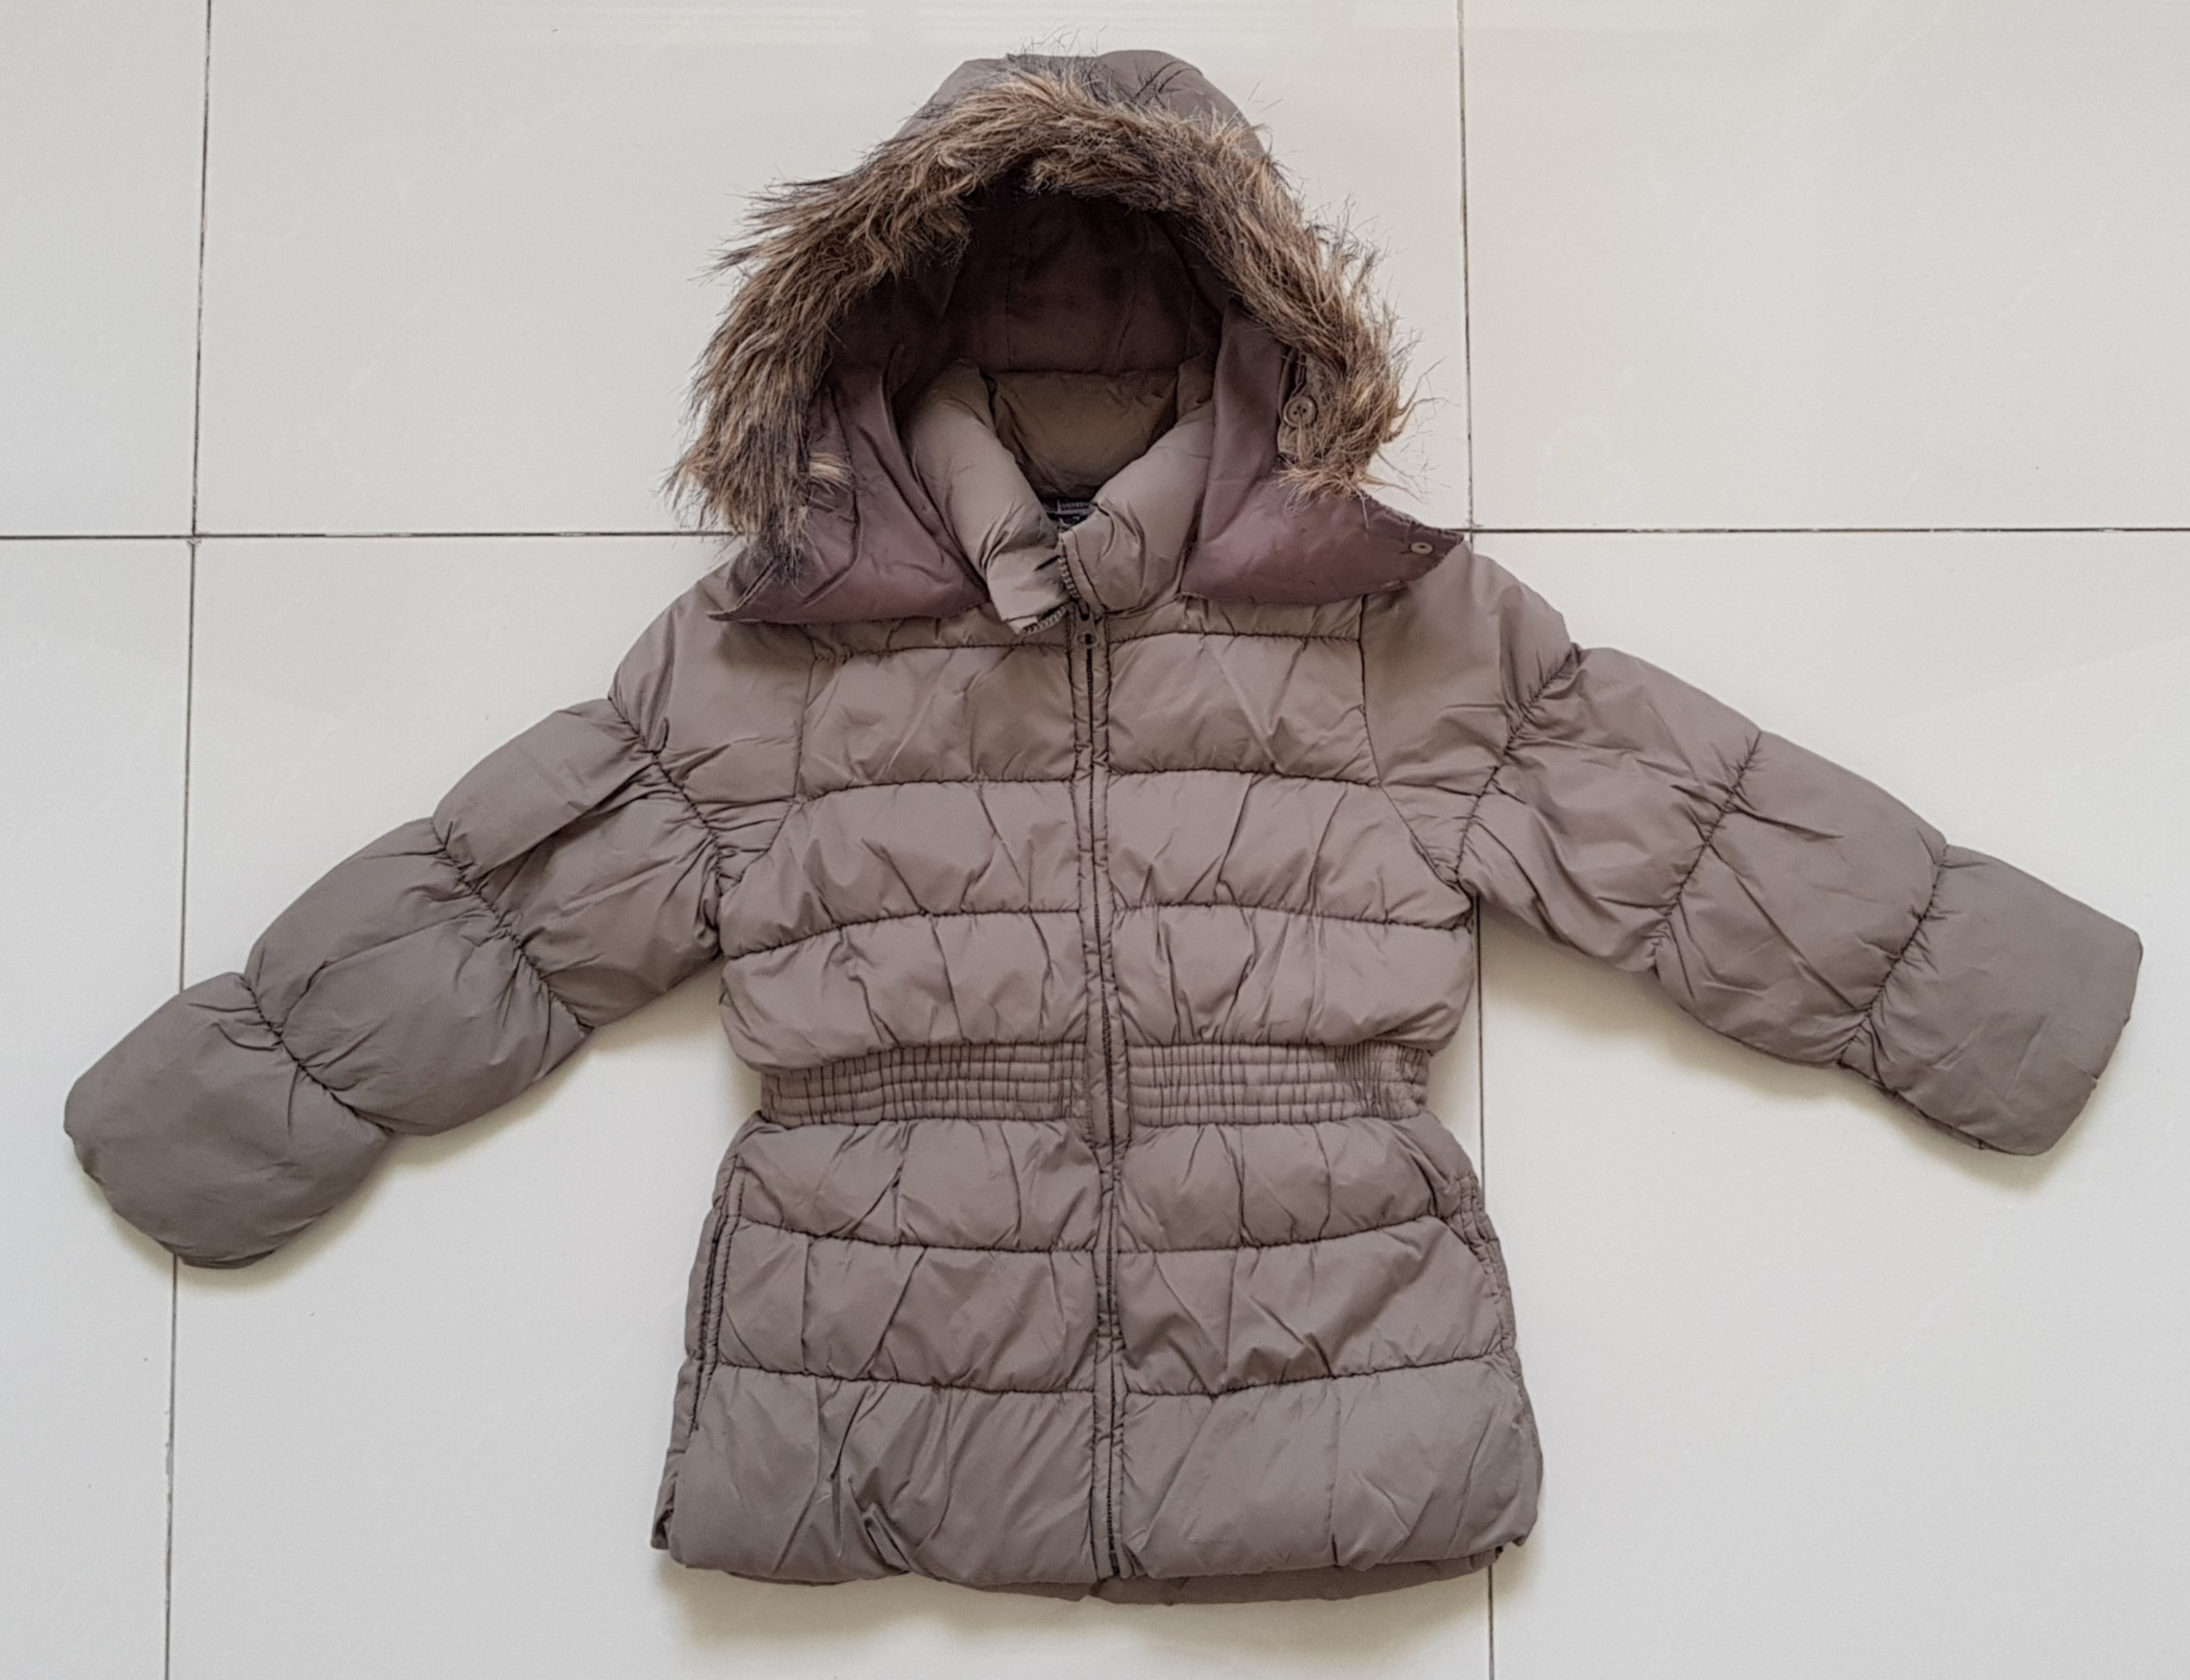 24764b2c5cd5 Zara Kids Winter Jacket with Faux fur trimmings Size 7-8 yrs A steal ...